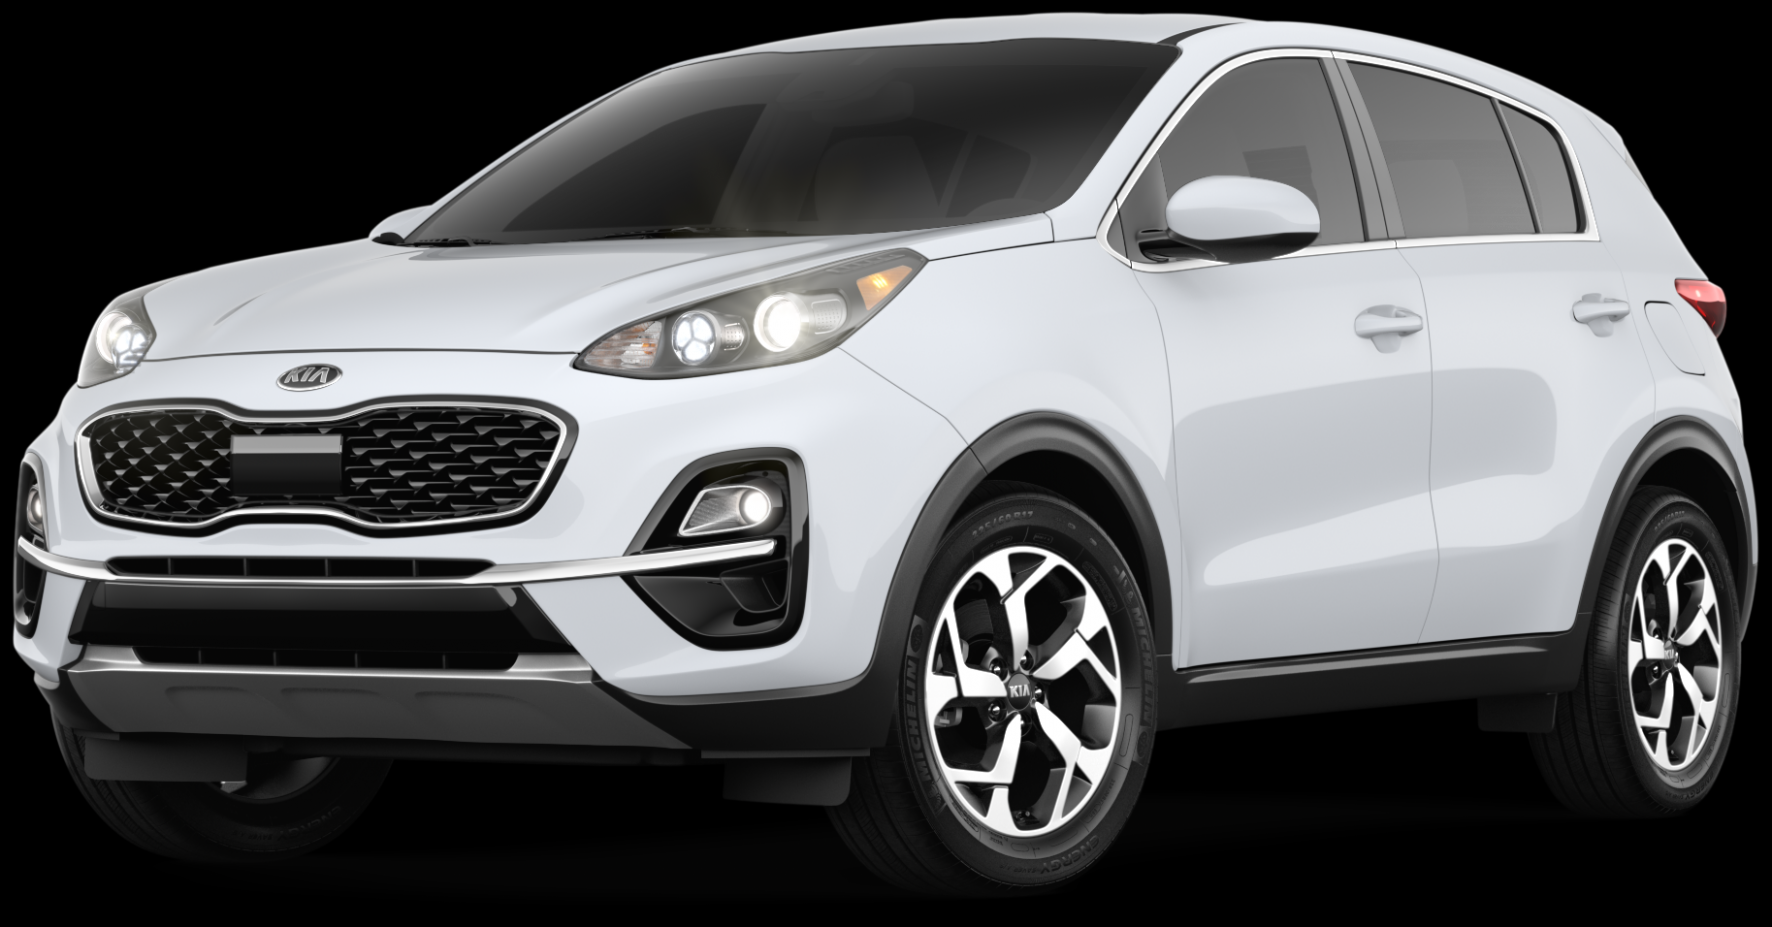 7 Picture Kia Sportage 2020 White In 2020 Kia Accessories Kia Sorento Kia